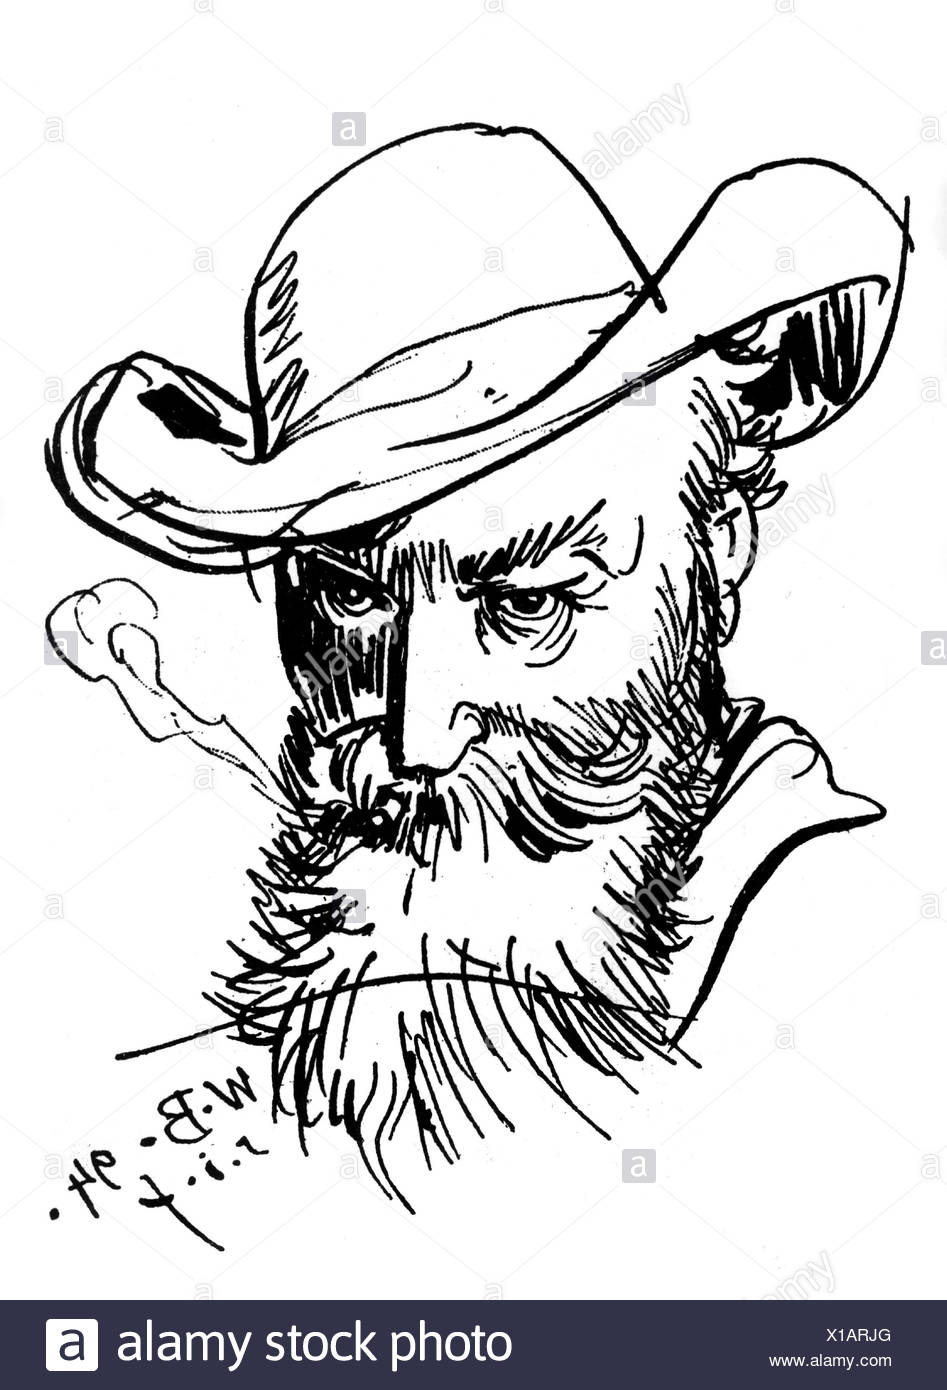 77dd6636ac4 Busch wilhelm german author writer and painter self portrait drawing artist  copyright has not to be